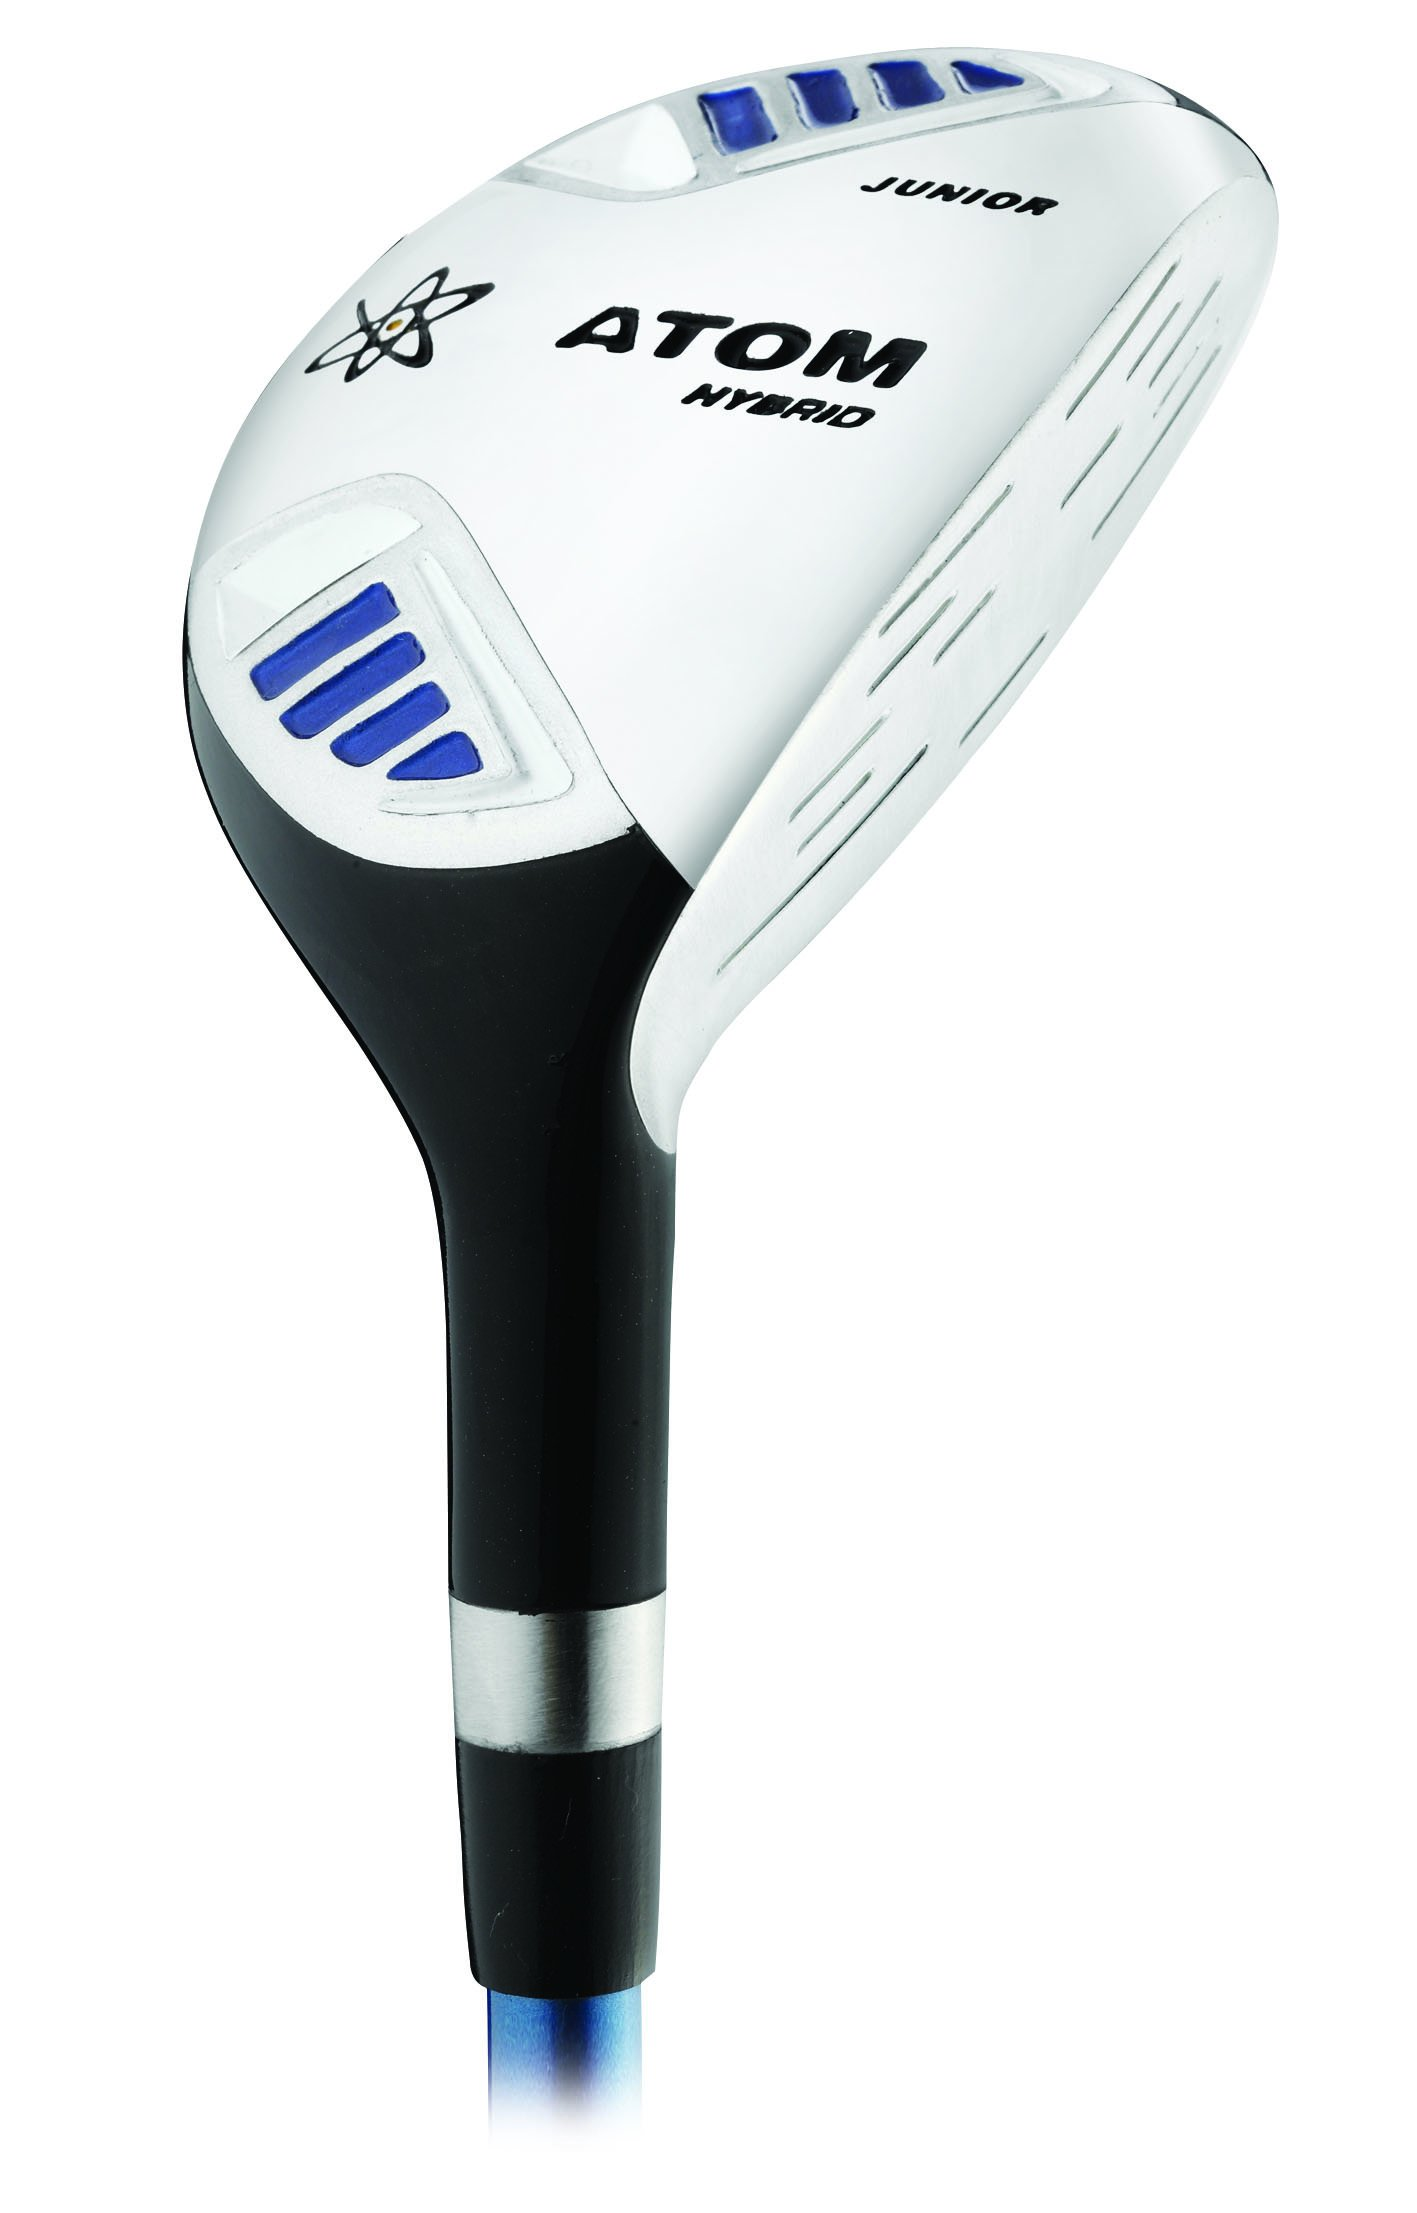 Founders Club Atom Complete Junior Golf Set, Youth 54-63'' Tall, Ages 10-13, Right-Handed by Founders Club (Image #3)